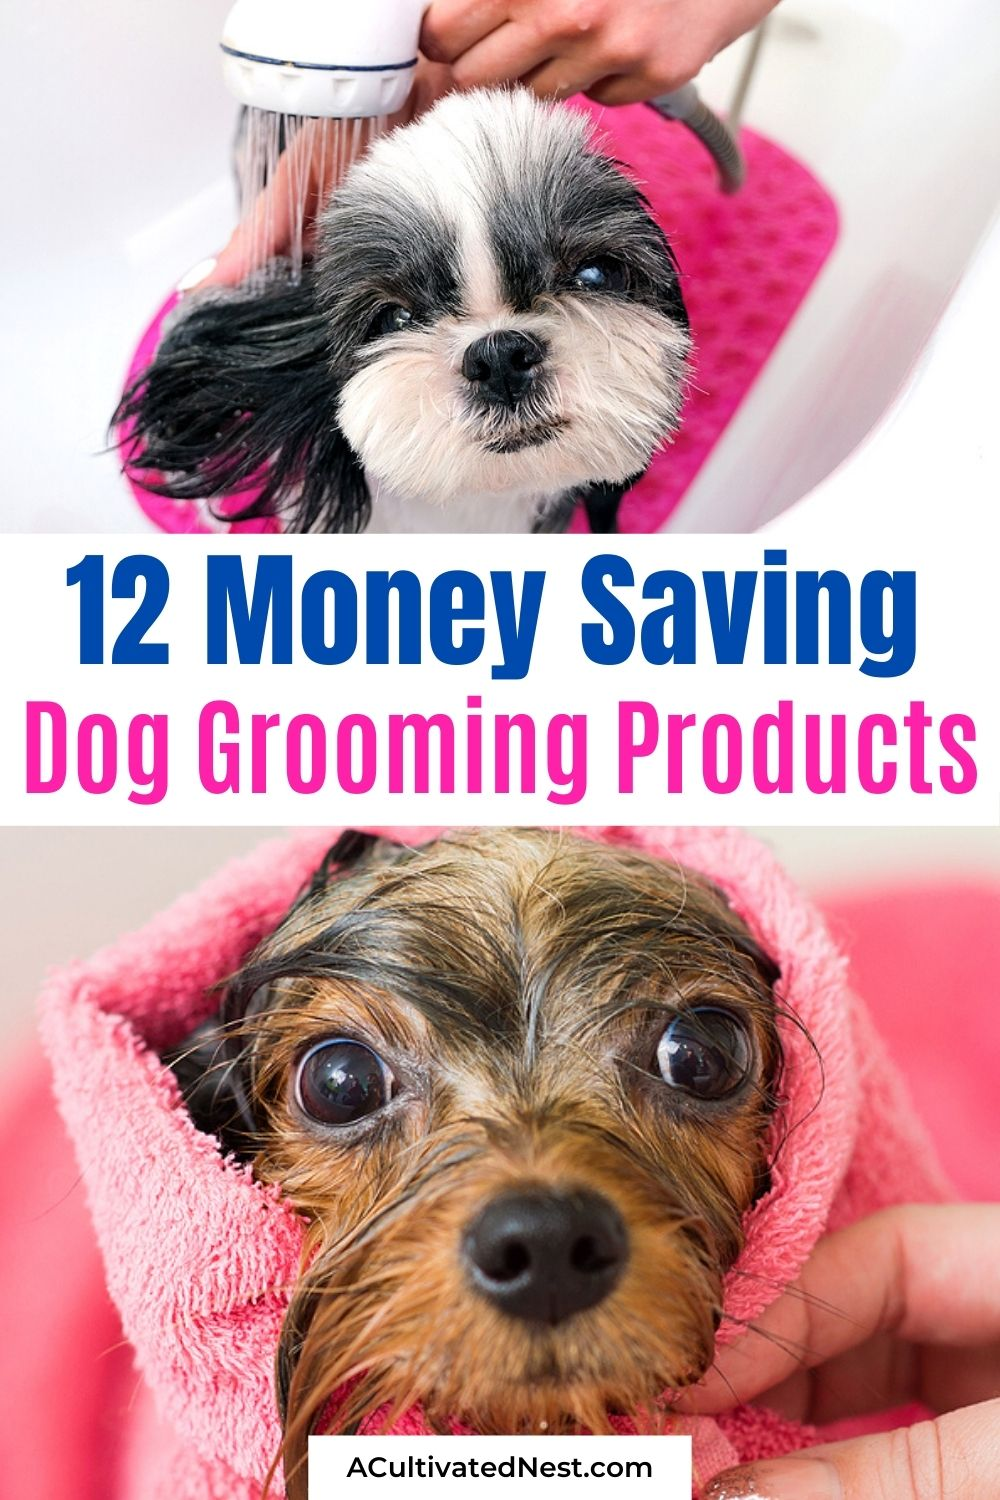 12 DIY Dog Grooming Products- If you want to get your dog clean and smelling great while saving money at the same time, then you need to make some of these DIY dog grooming products! | homemade dog shampoo, homemade dog ear cleaner, homemade dog eye wipes, #dog #dogGrooming #frugalLiving #homemade #ACultivatedNest